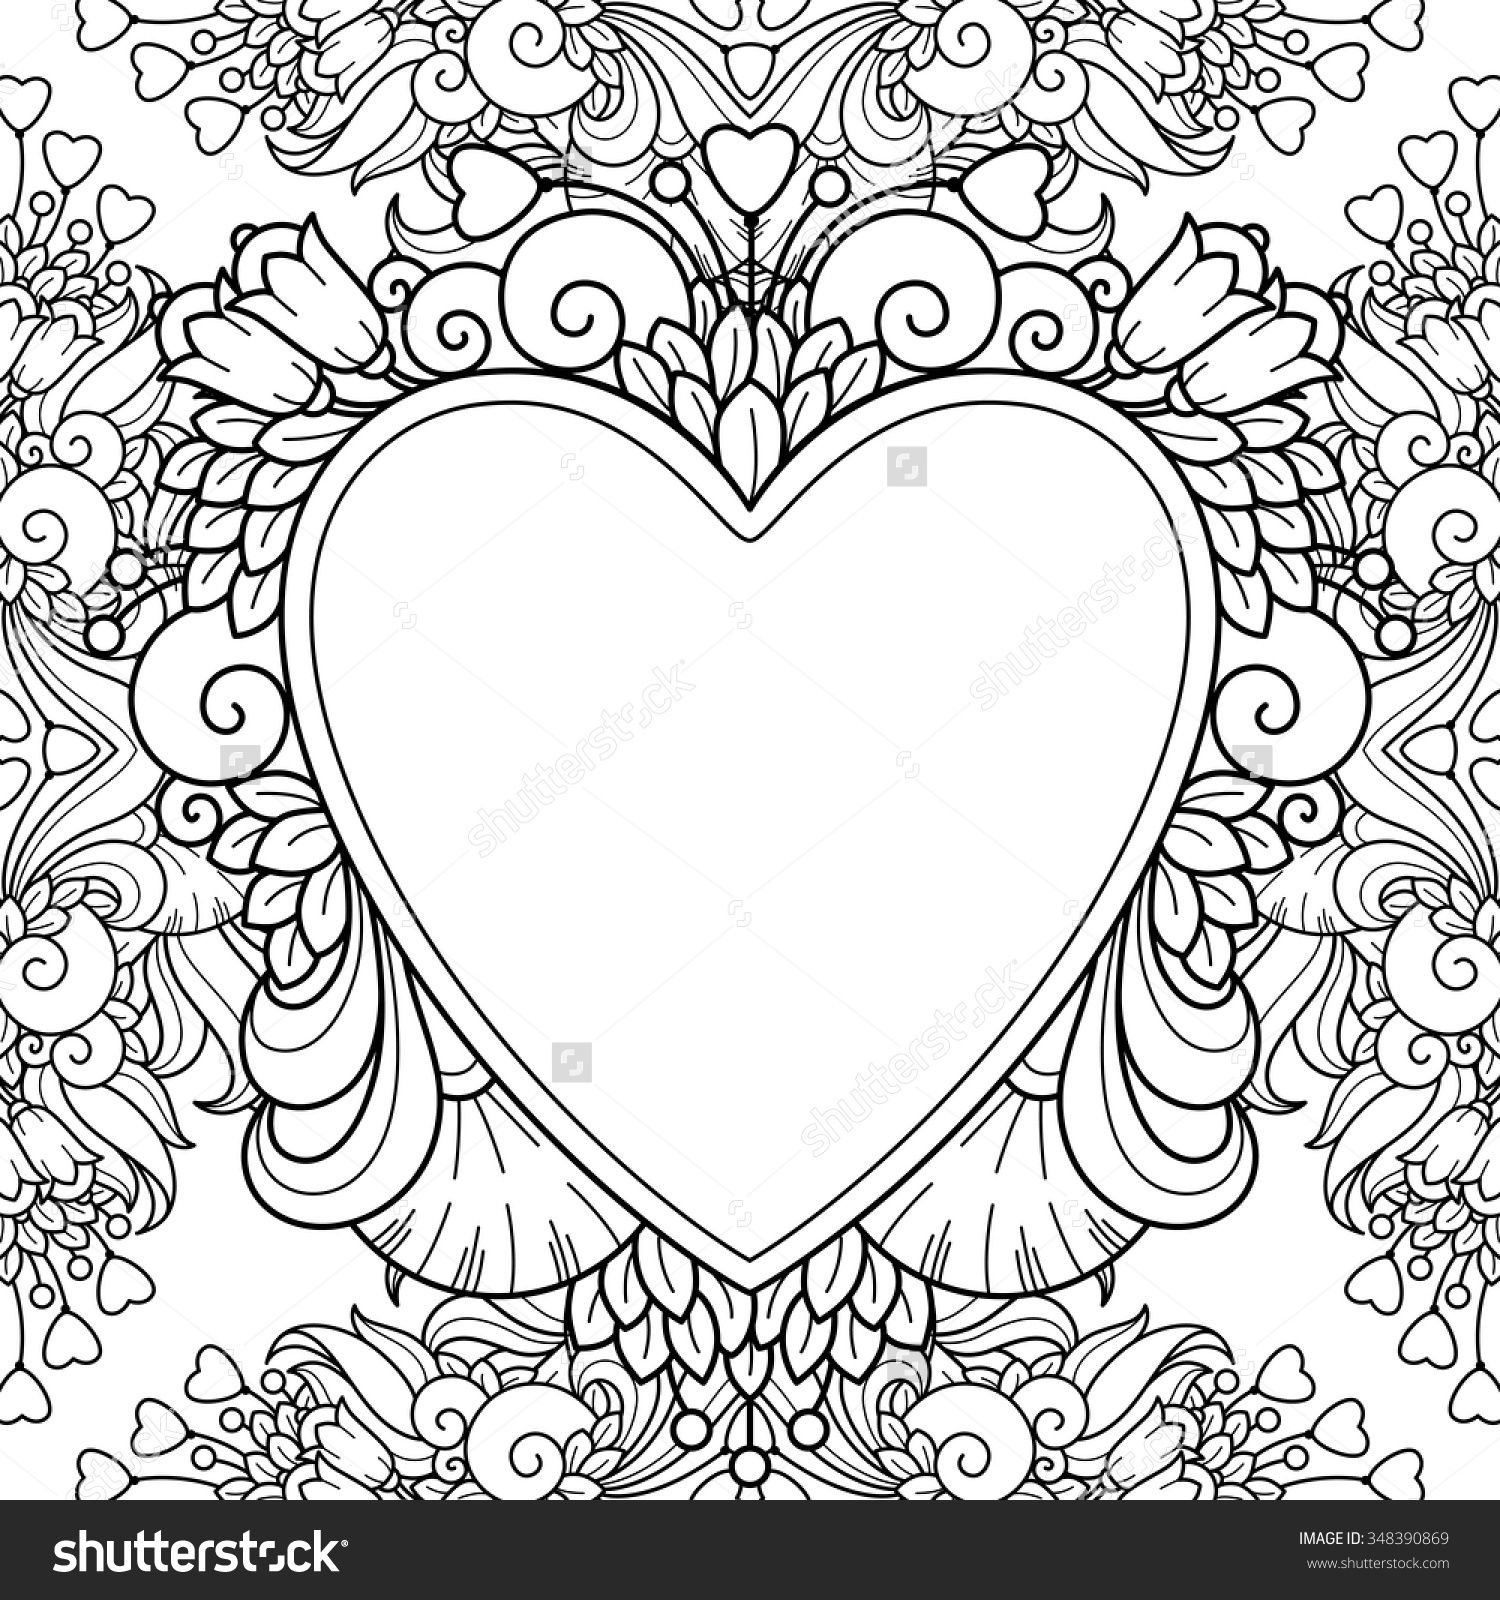 Decorative Love Frame With Hearts Flowers Ornate Elements In